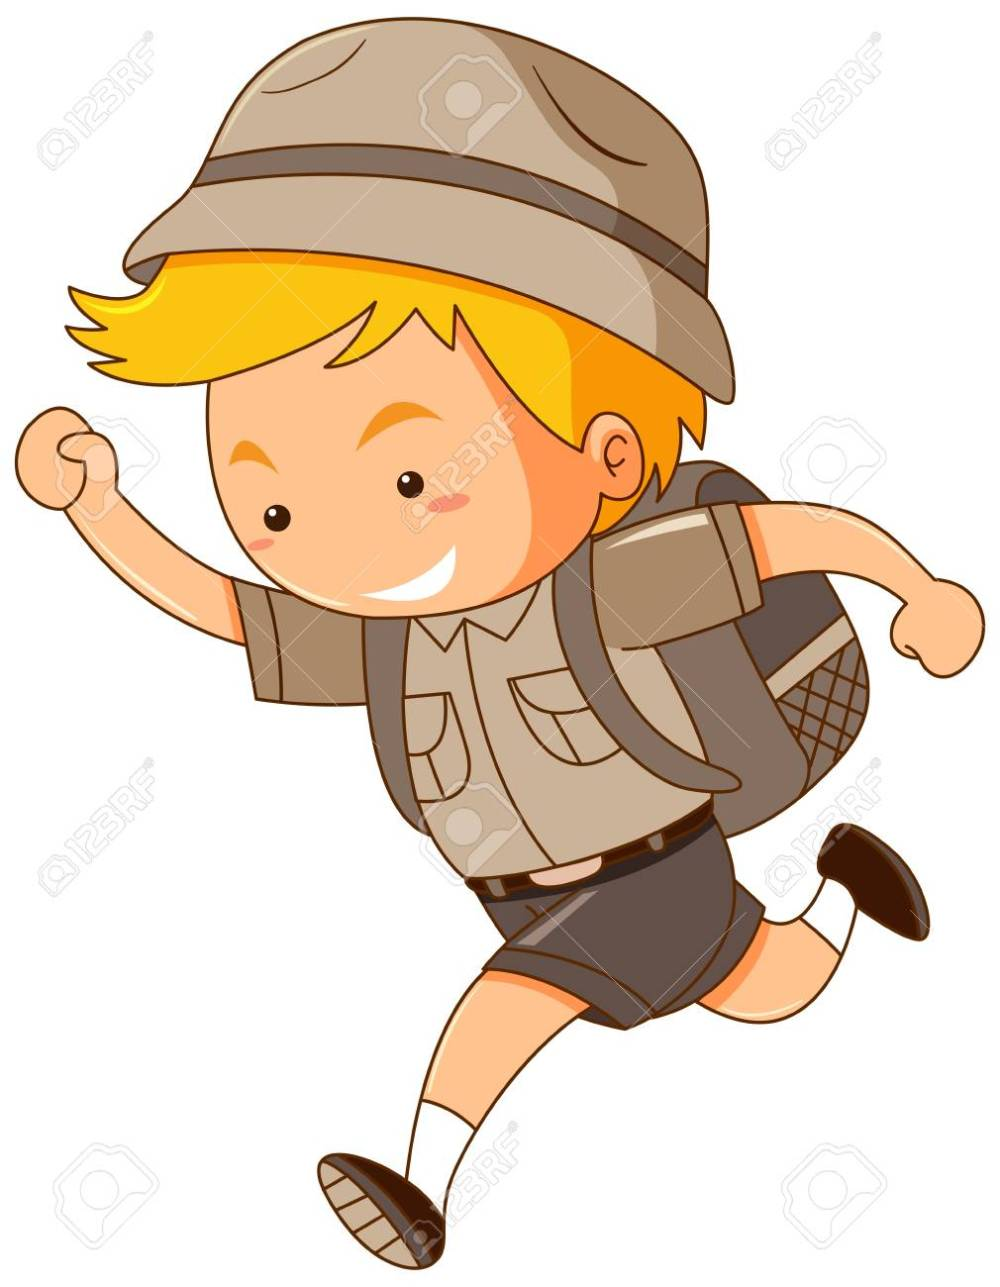 medium resolution of running person with backpack clipart